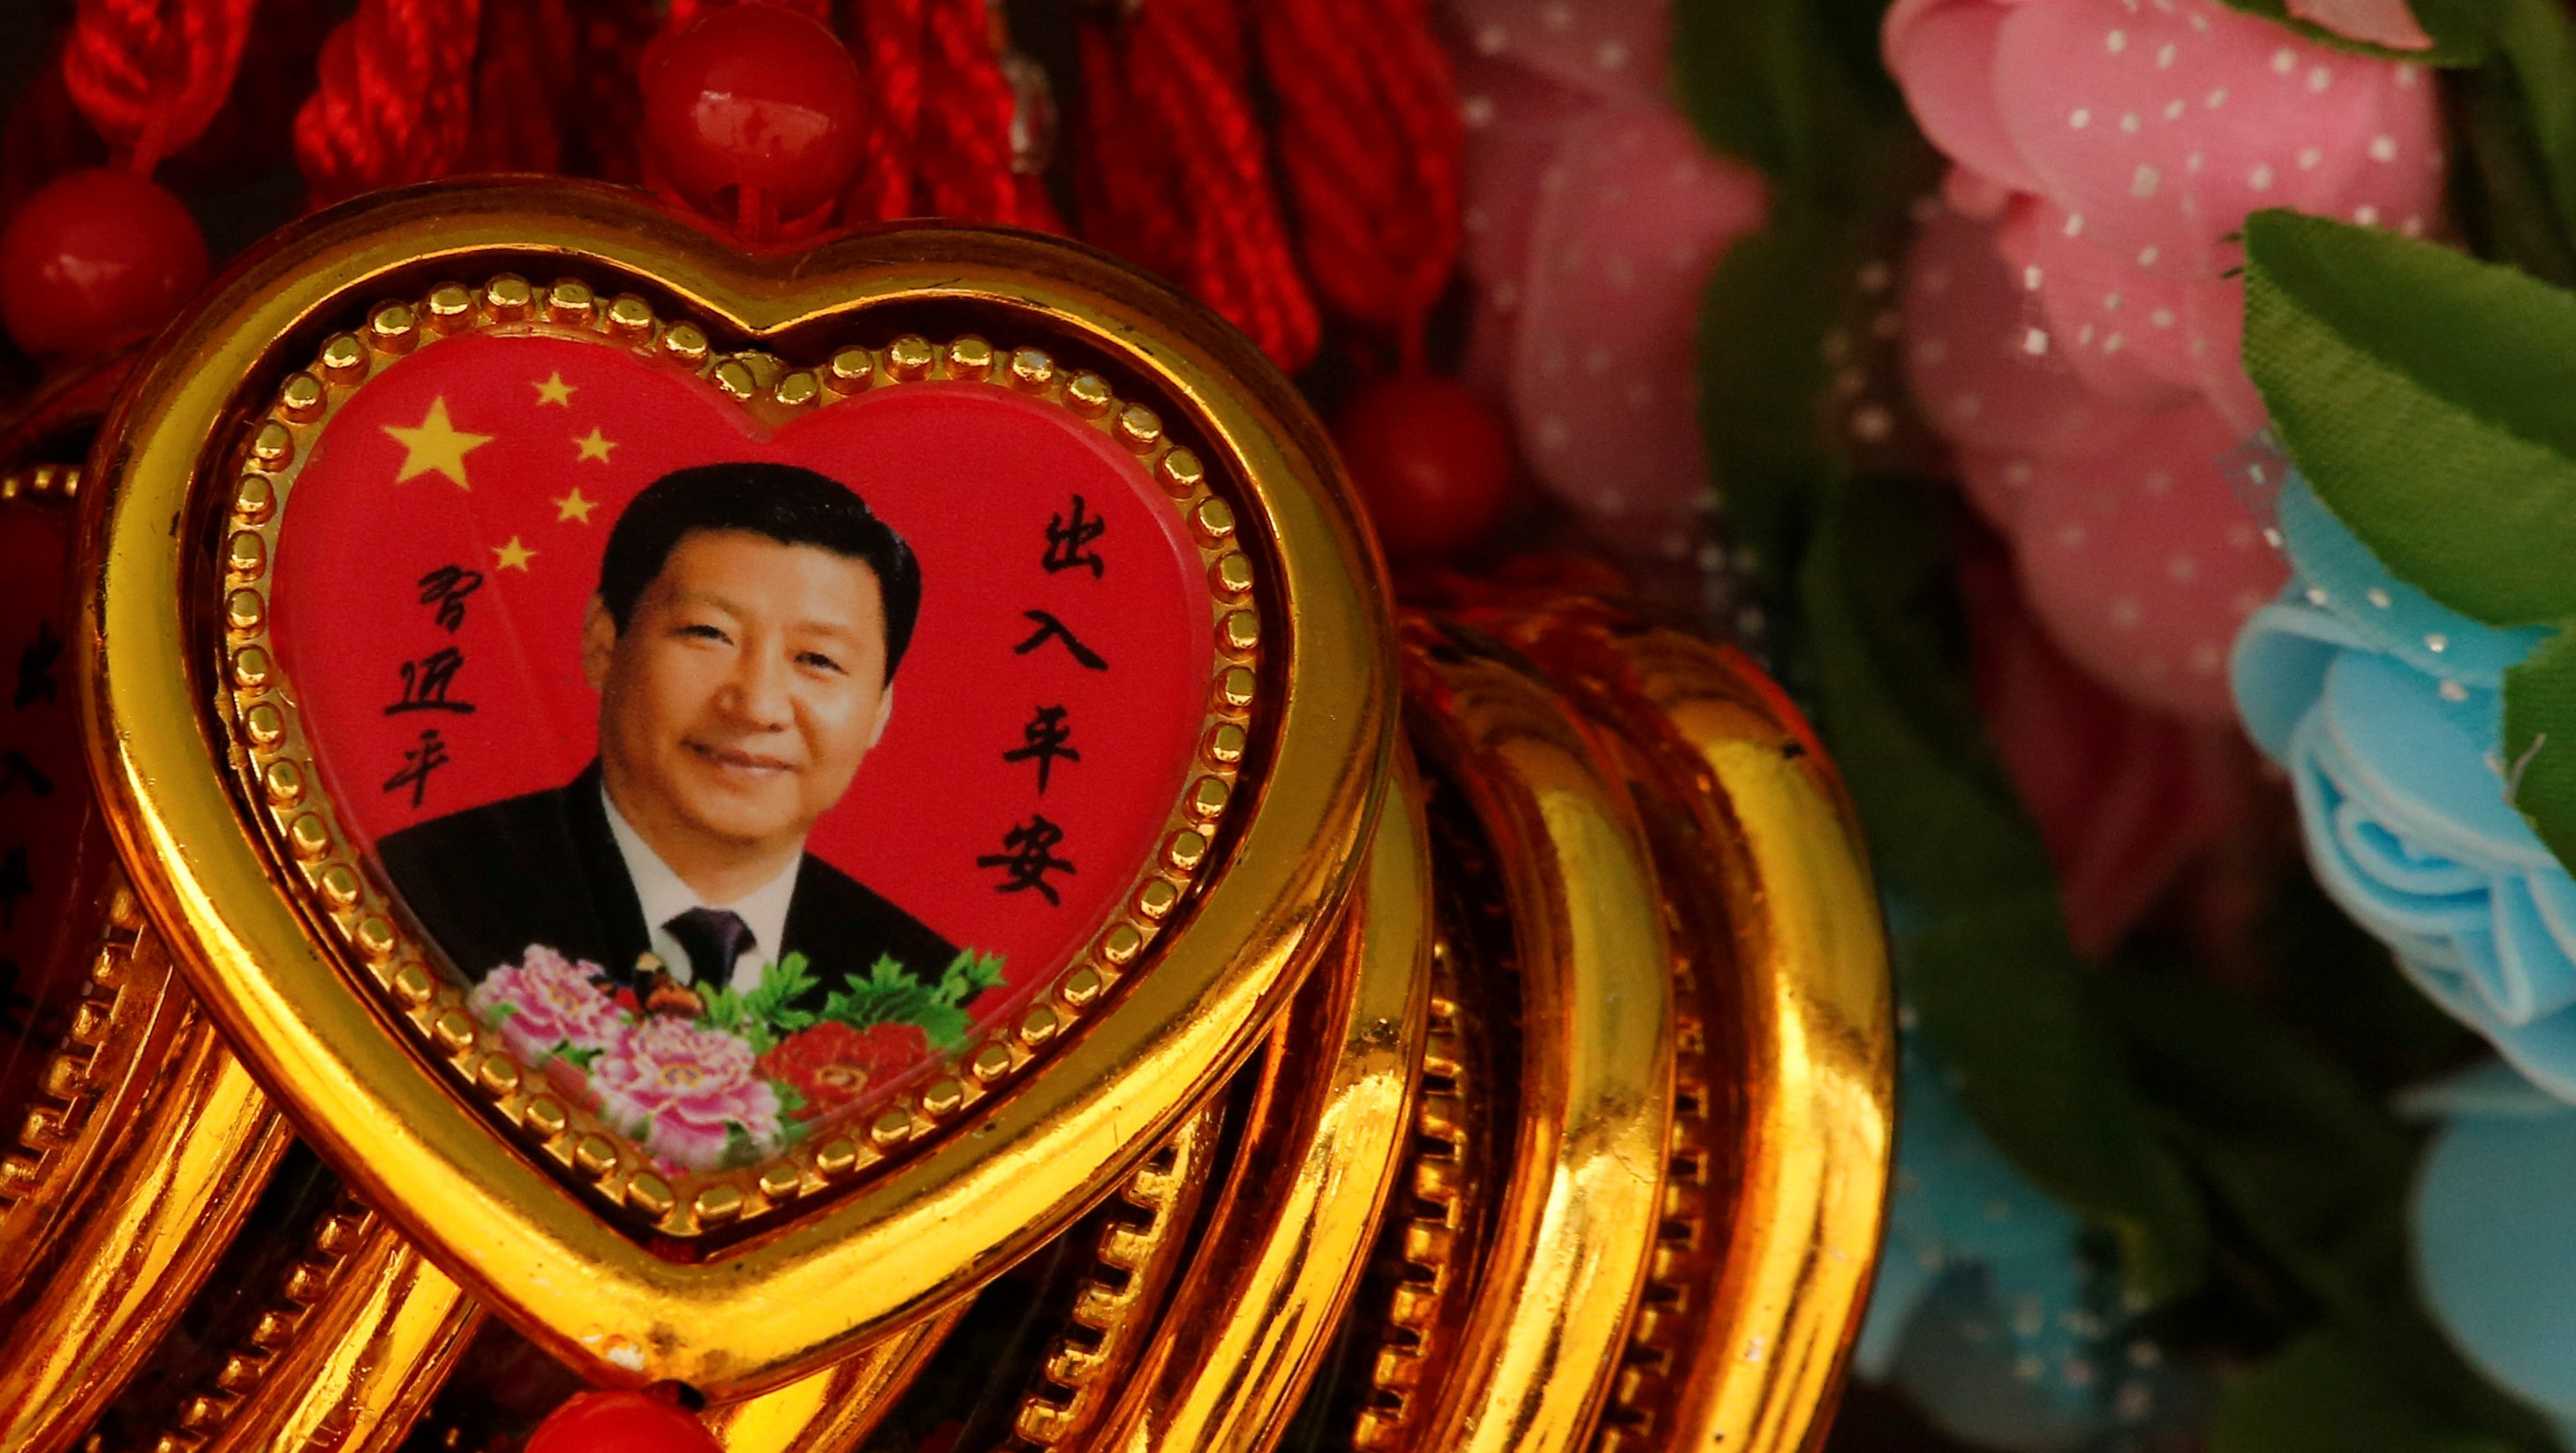 FILE PHOTO: Souvenir necklaces with a portrait of Chinese President Xi Jinping are displayed for sale at a stall in Tiananmen Square in Beijing, China, February 26, 2018.